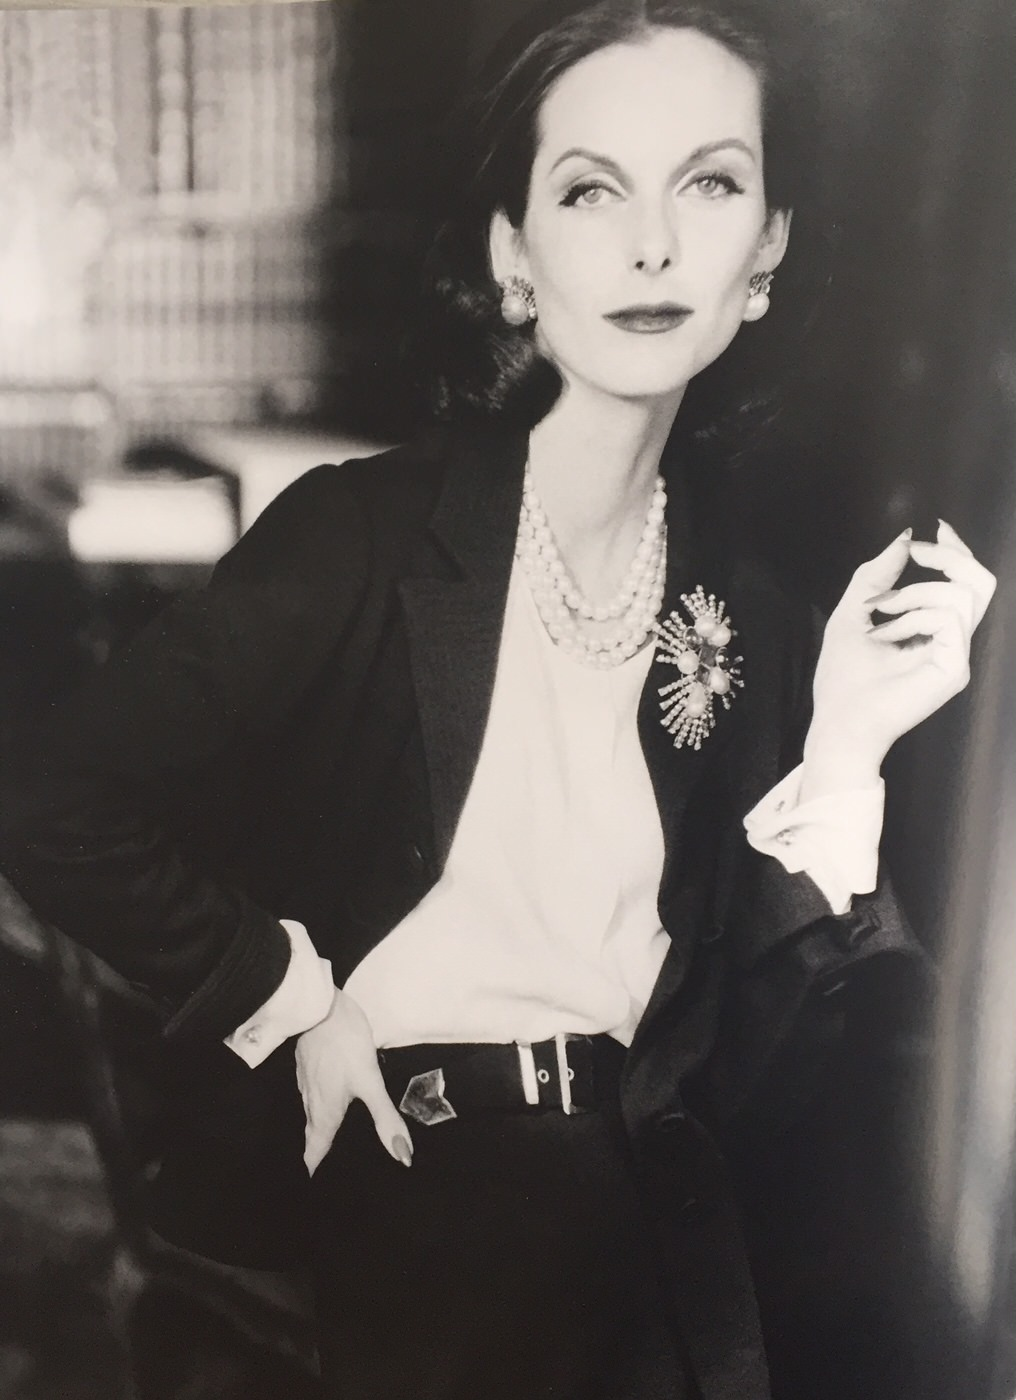 Anne Saint Marie posing for a picture wearing a black jacket and a white blouse